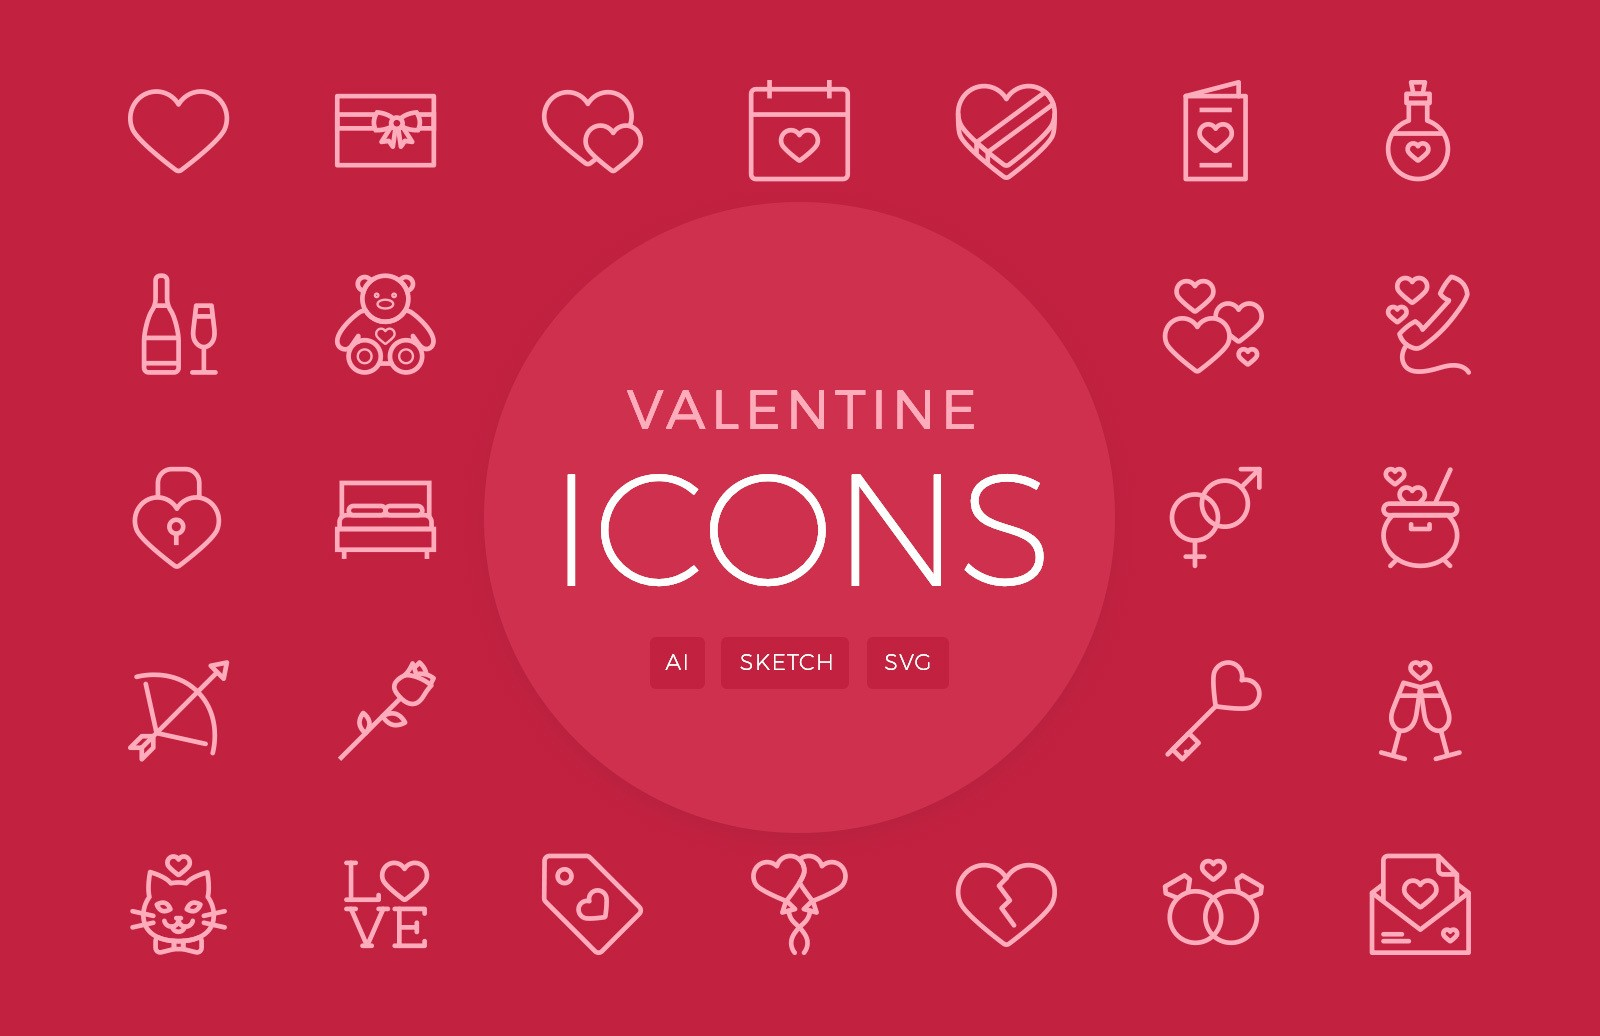 freeuse stock Valentine vector icon. S day icons